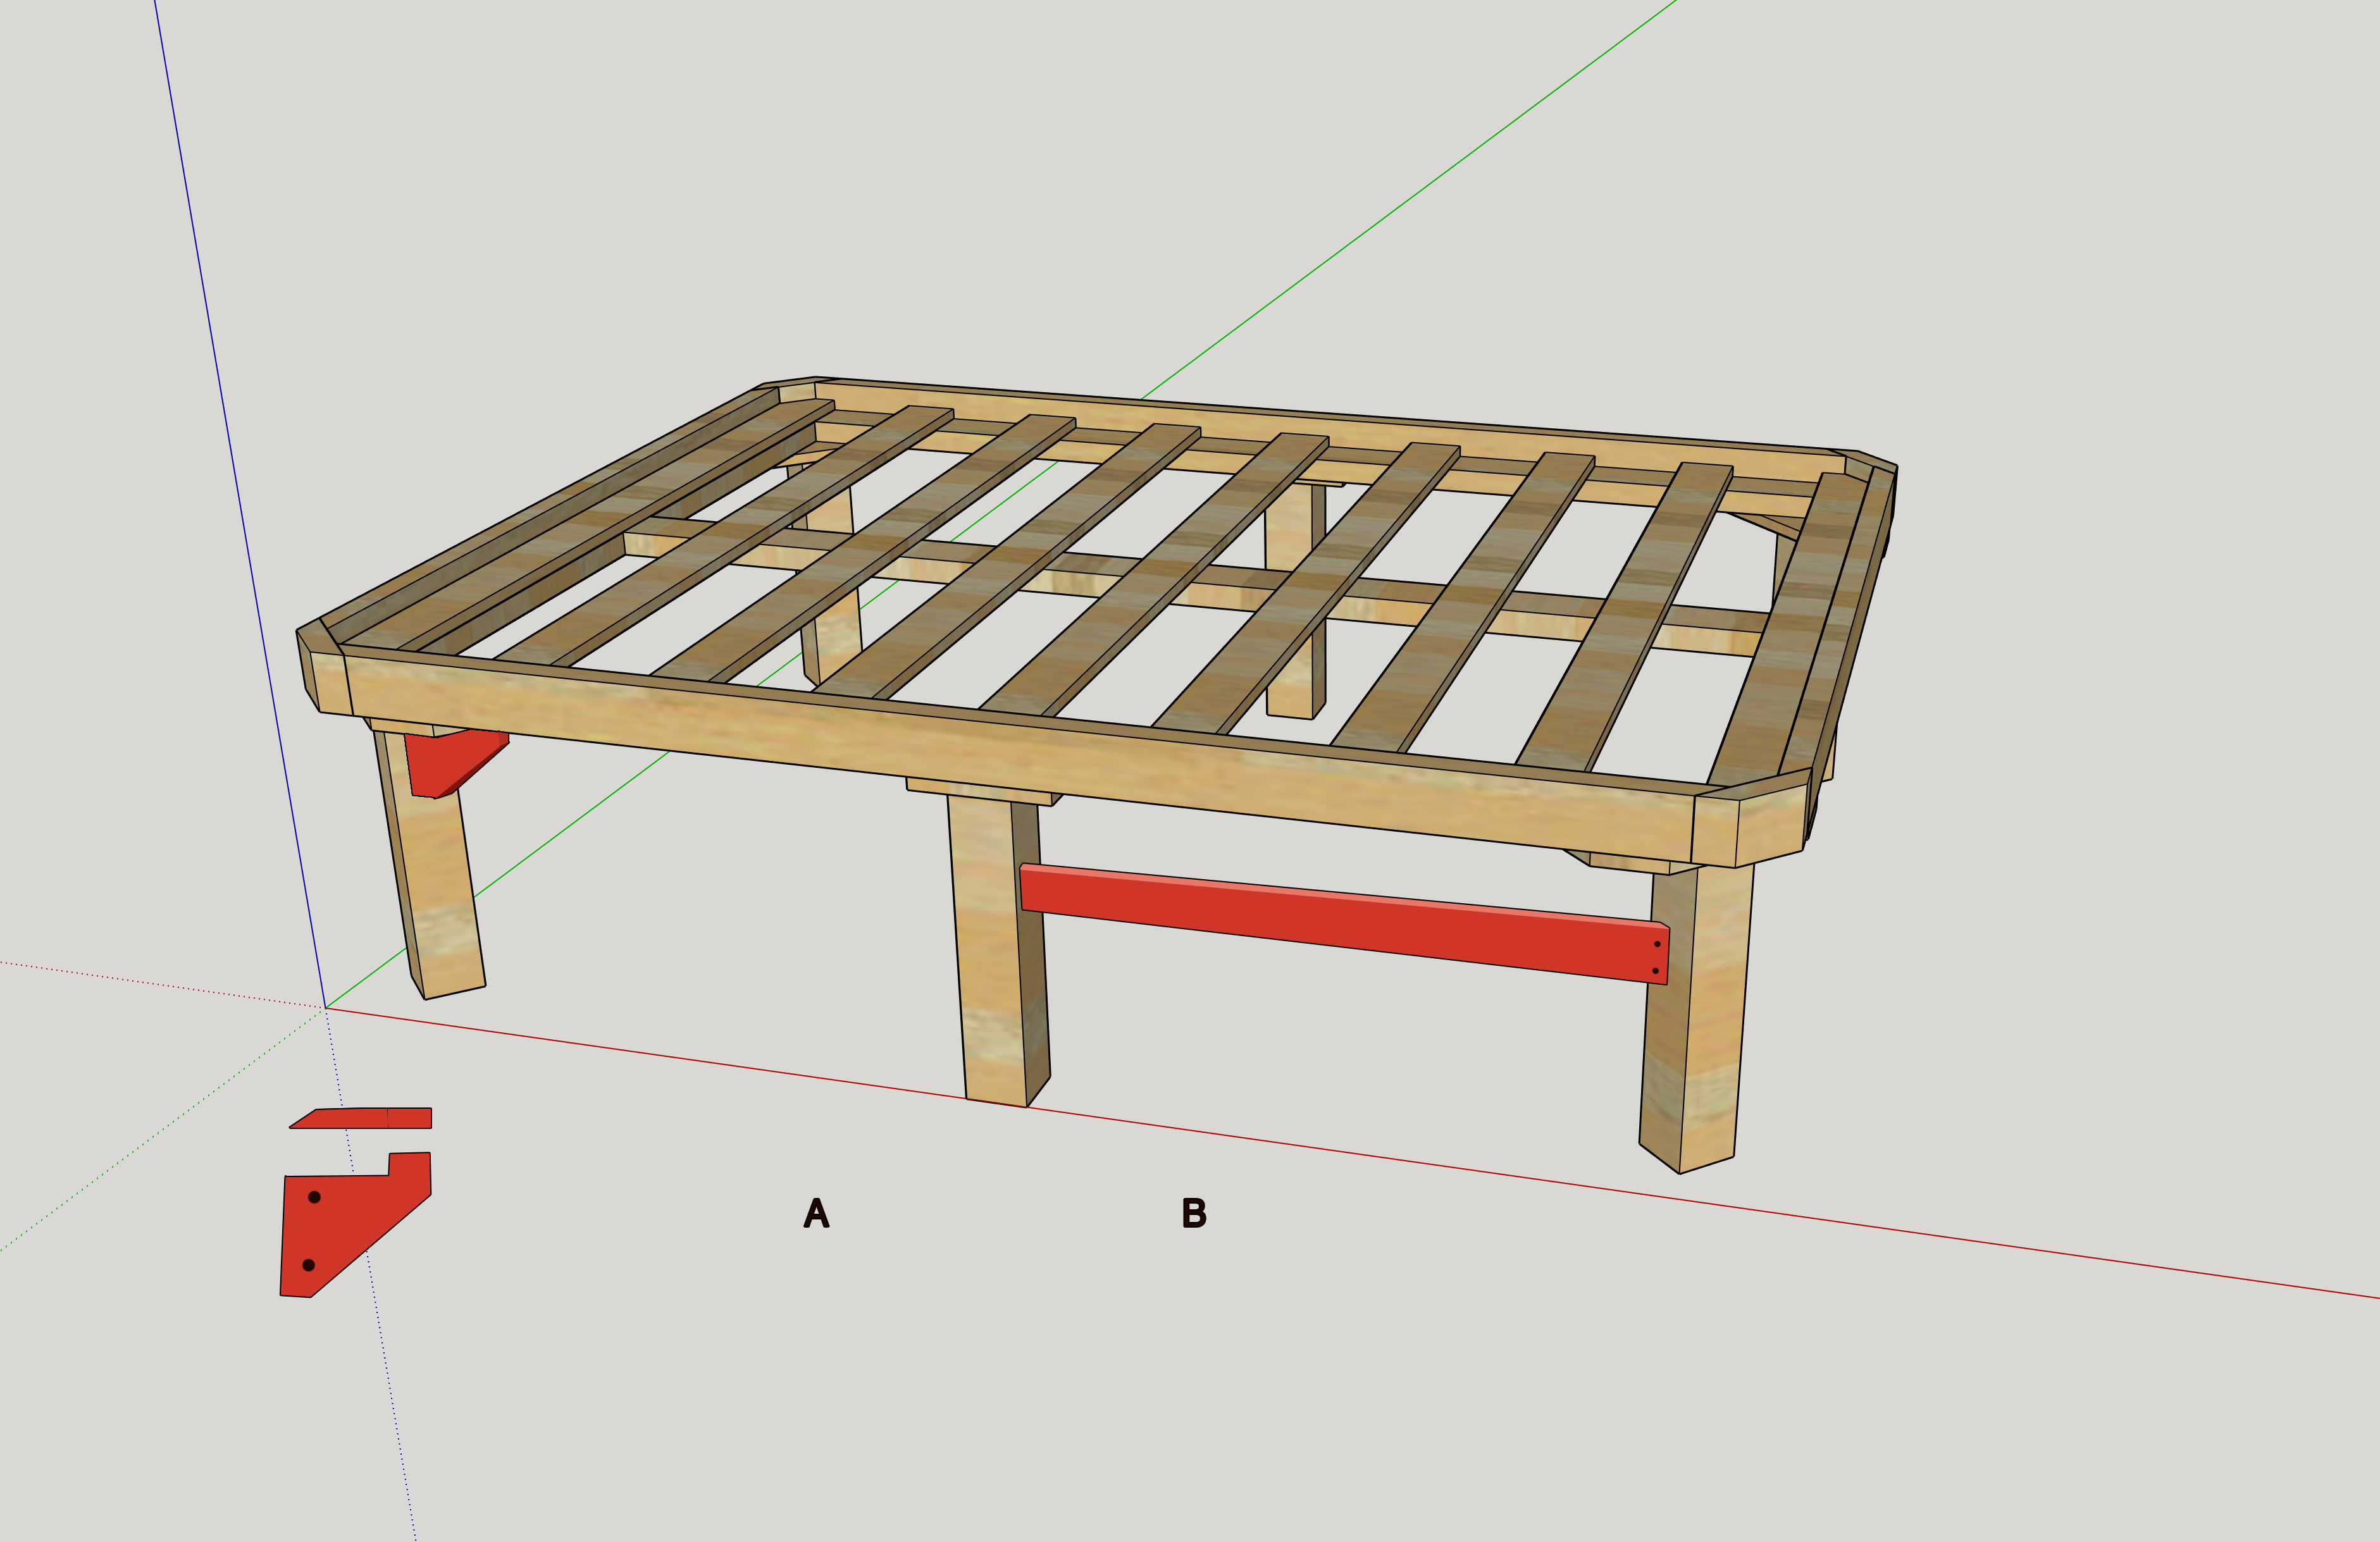 Bed frame woodworking in sketchup - Science & Engineering ...